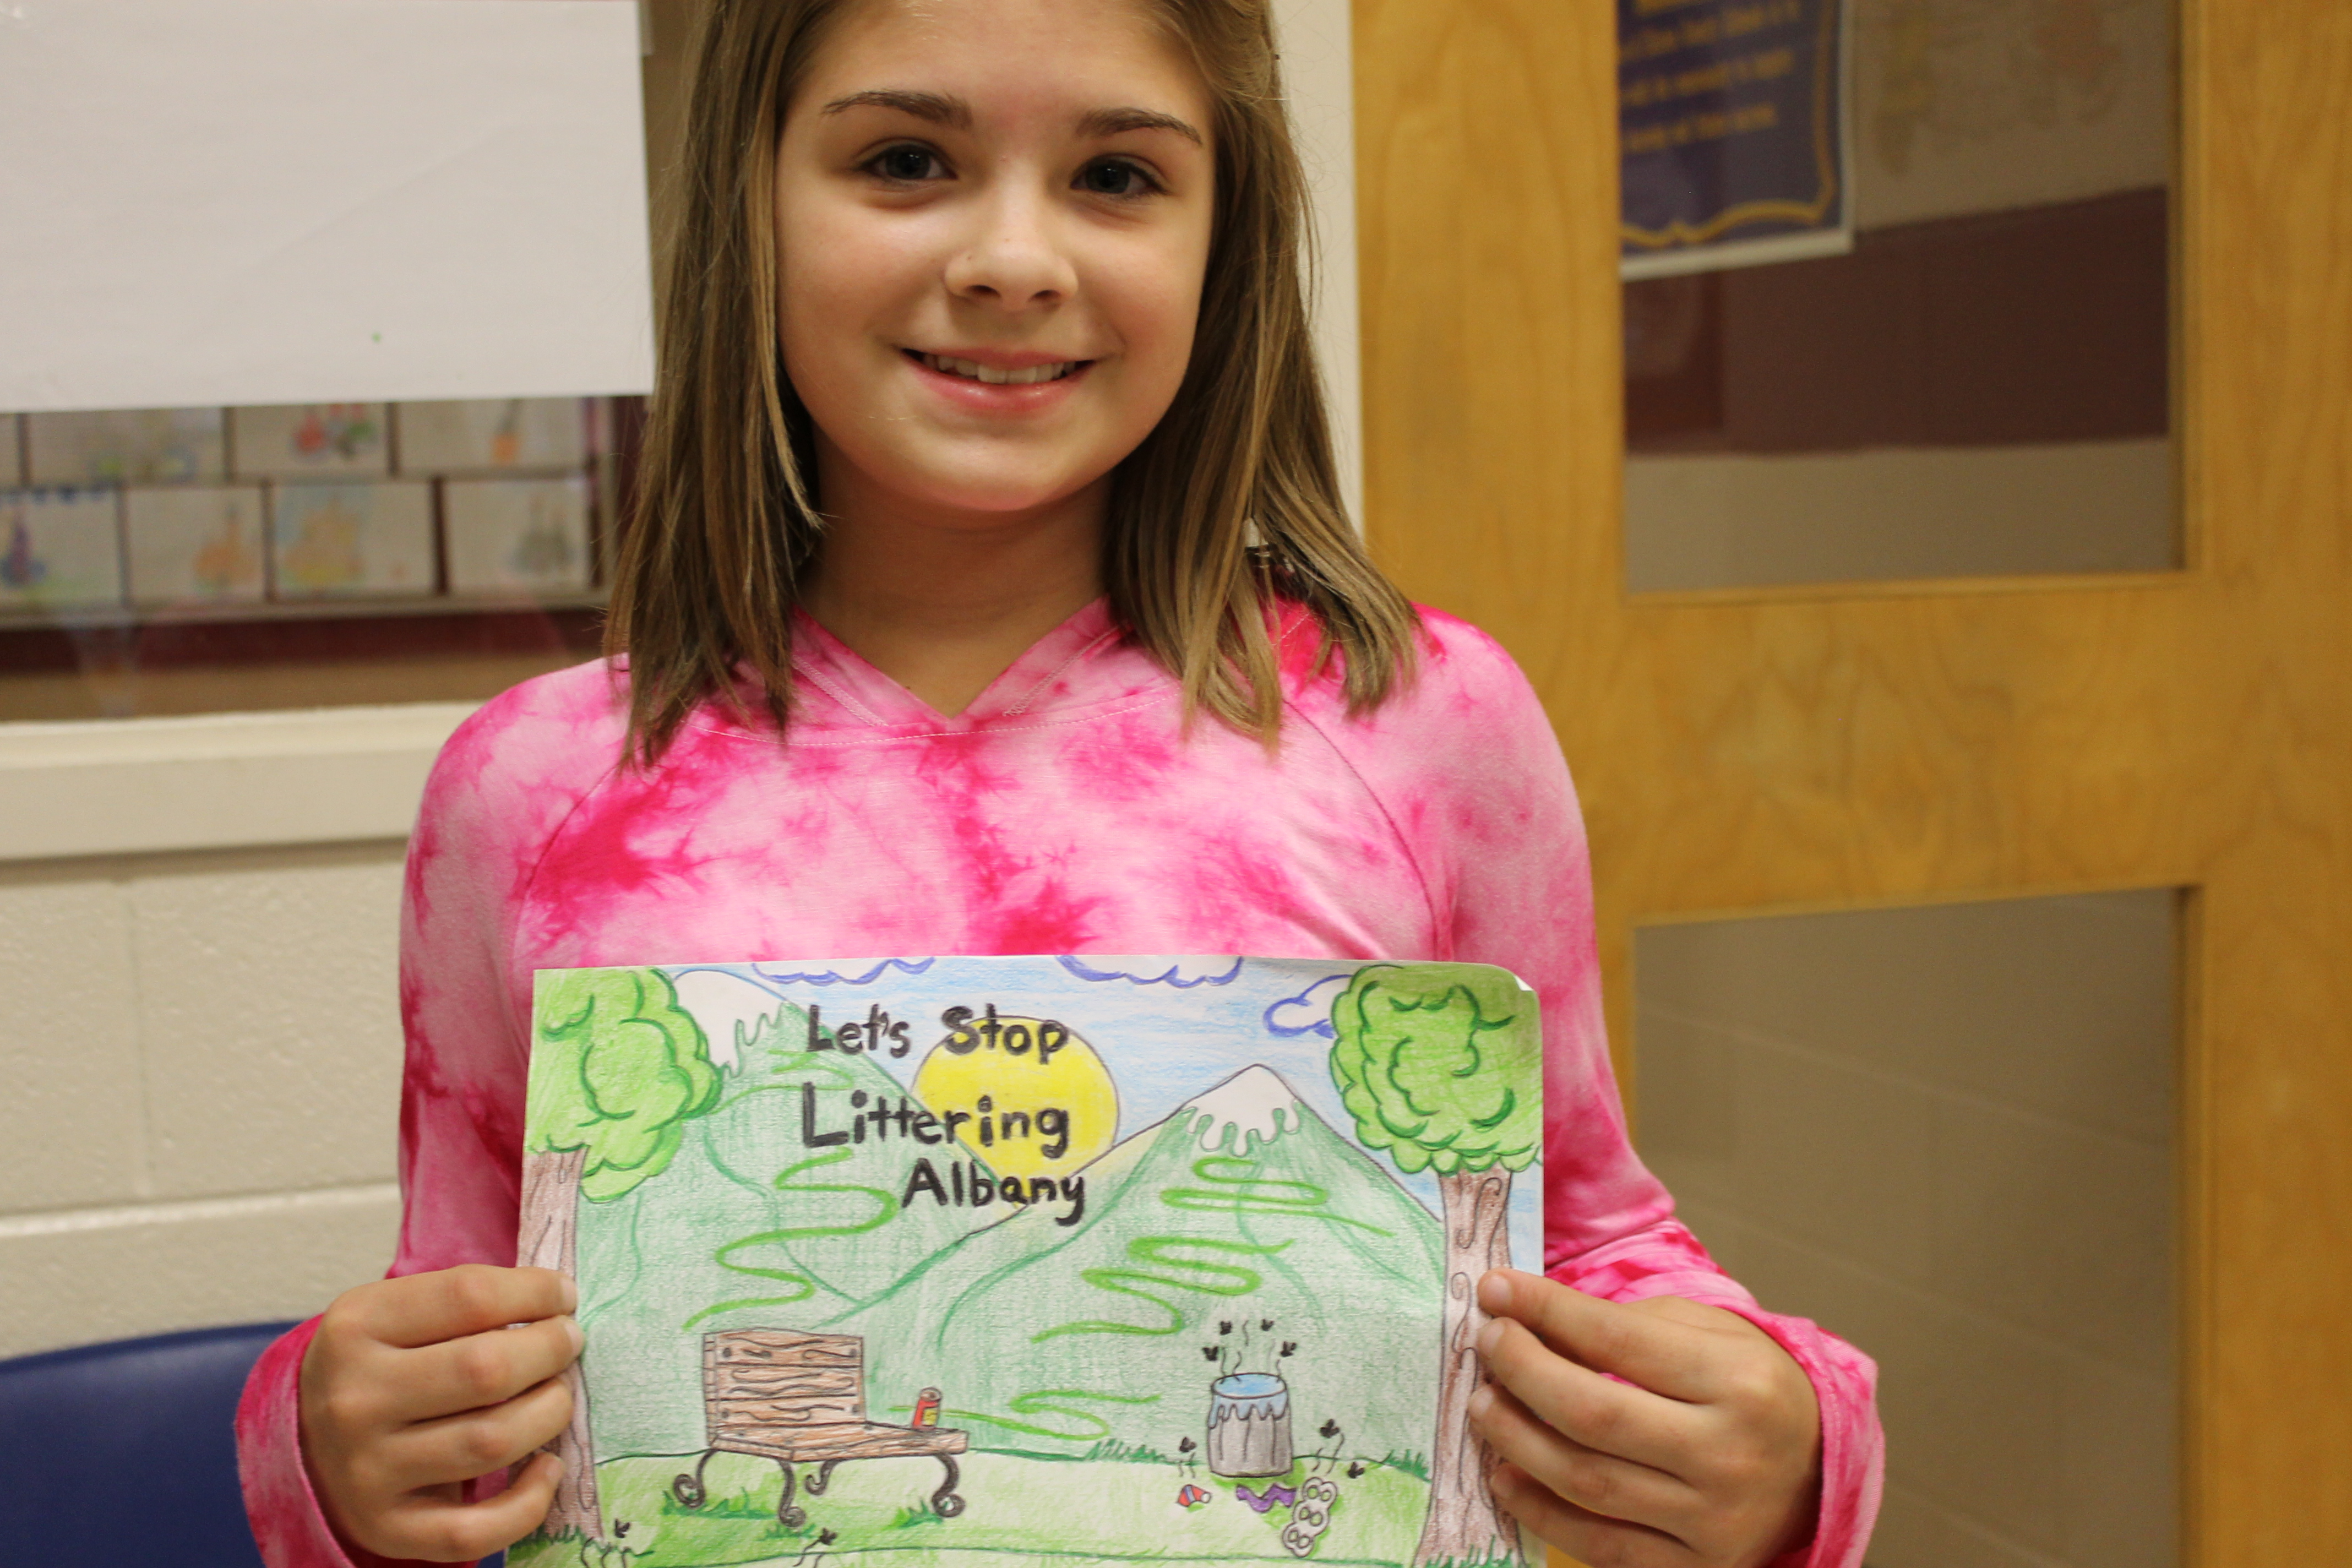 AES student Tressay Stinson was the overall winner of the Stop Littering Albany Poster Contest.